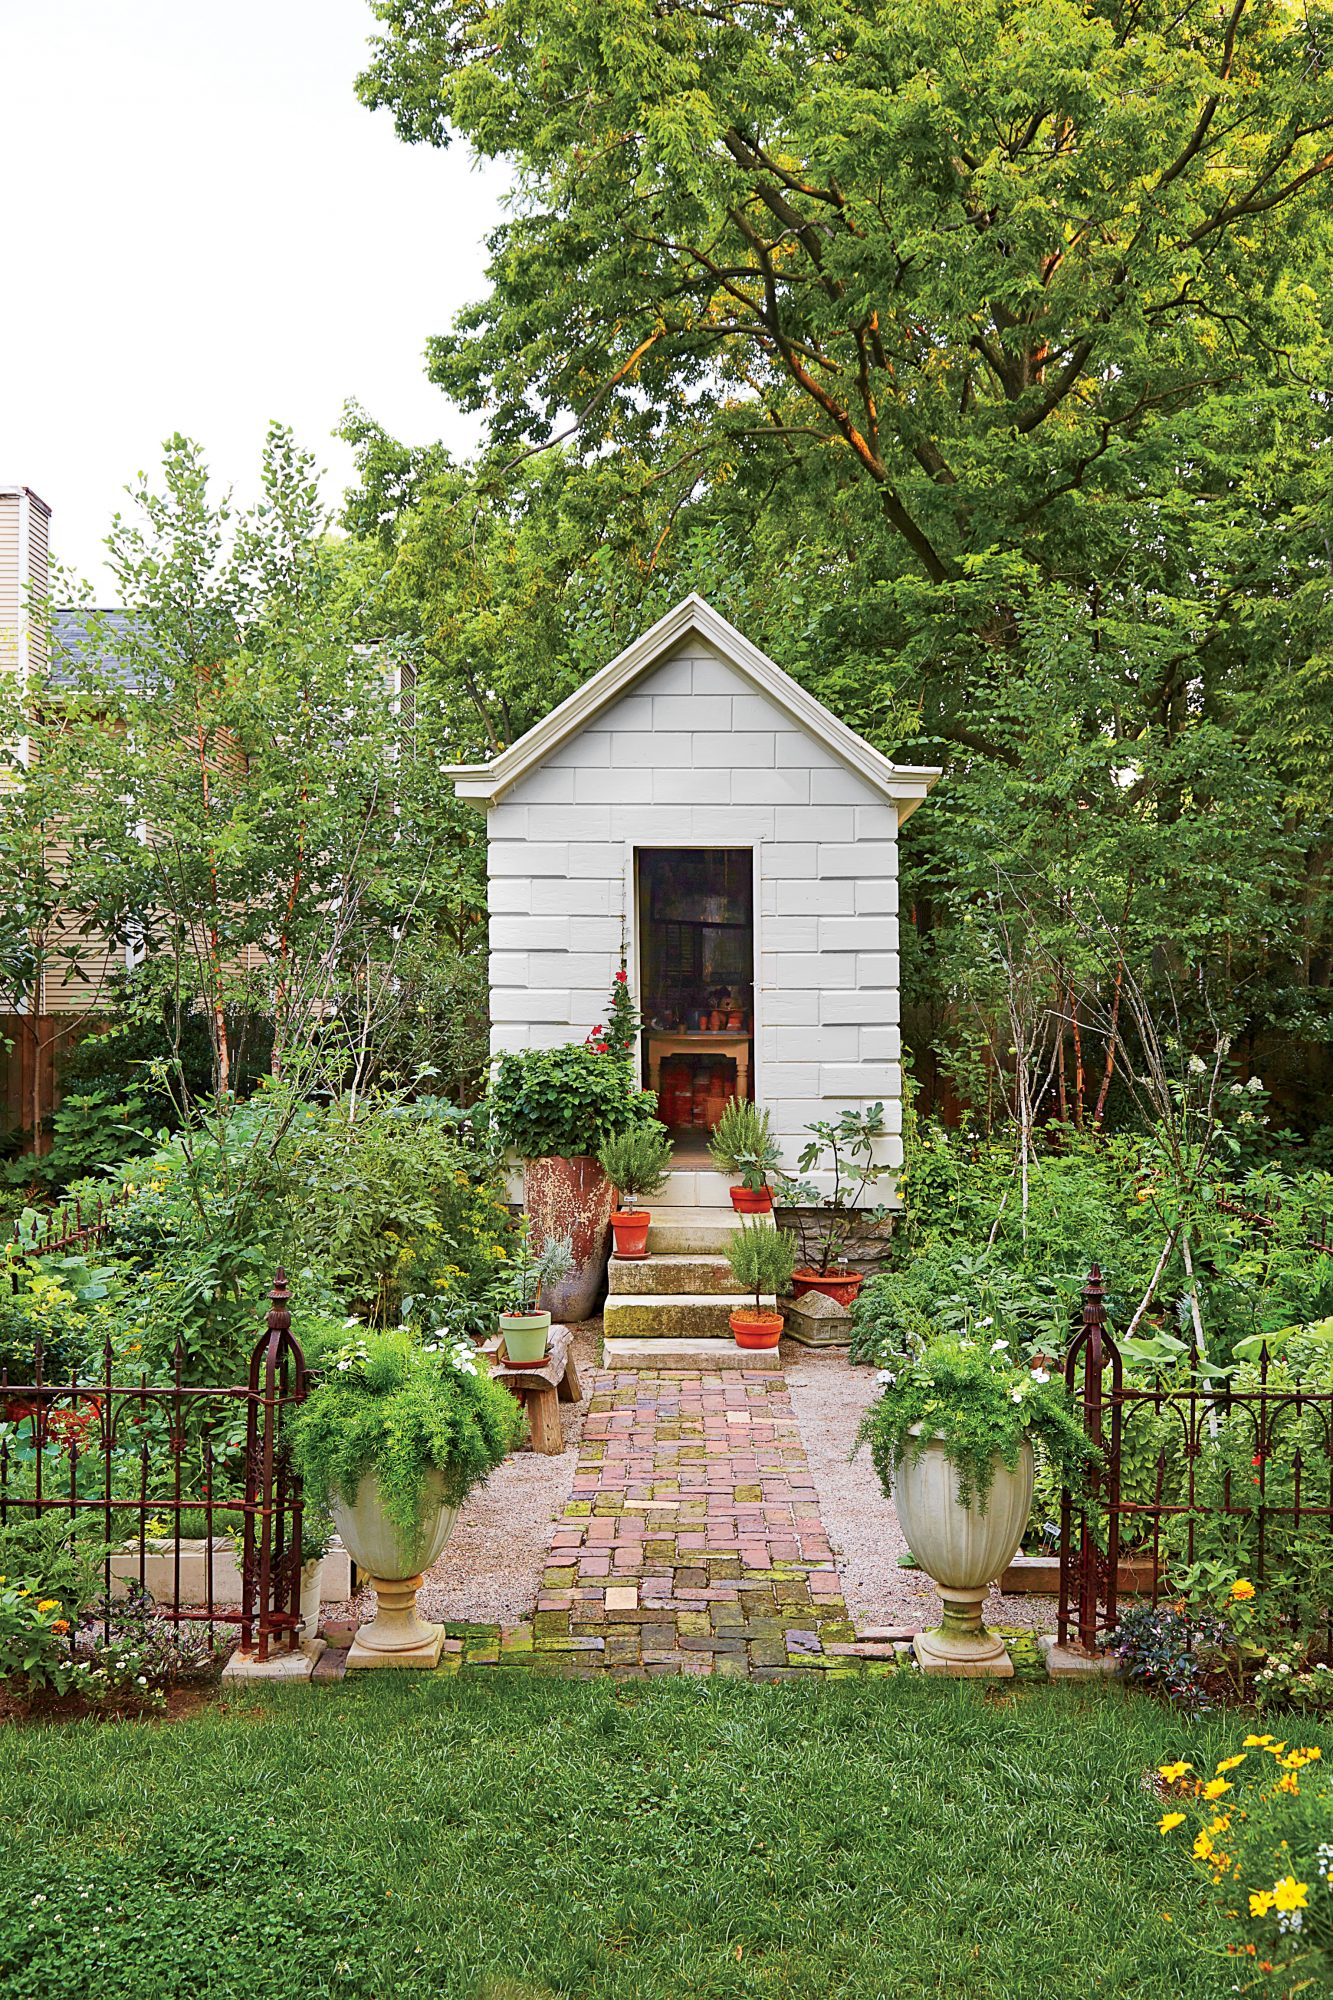 Backyard Garden Toolshed